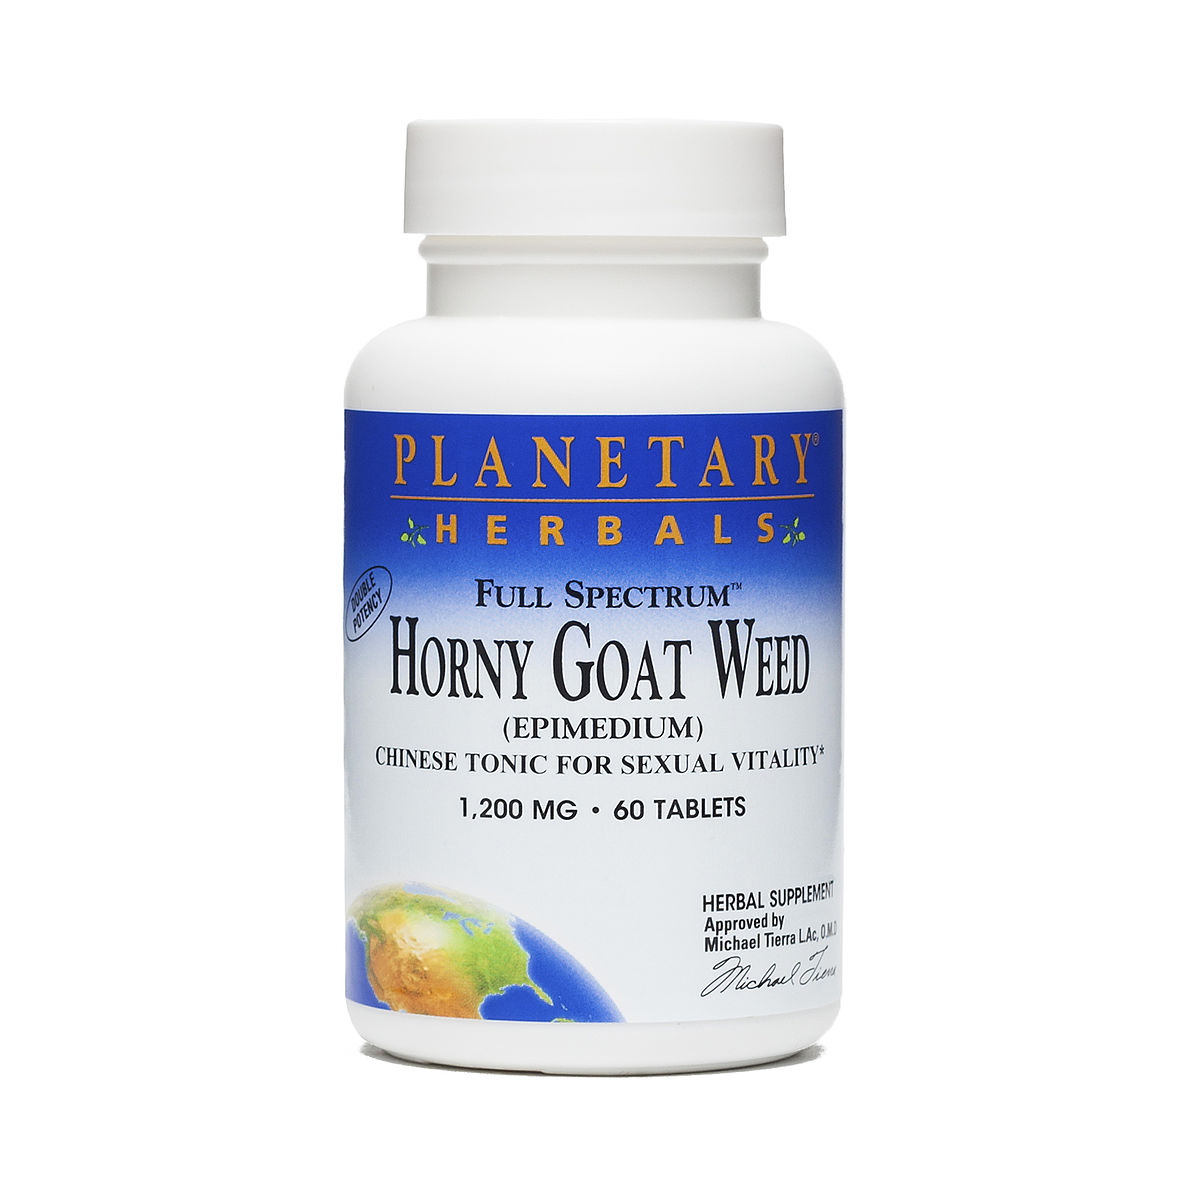 Horny Goat Weed Full Spectrum By Planetary Herbals